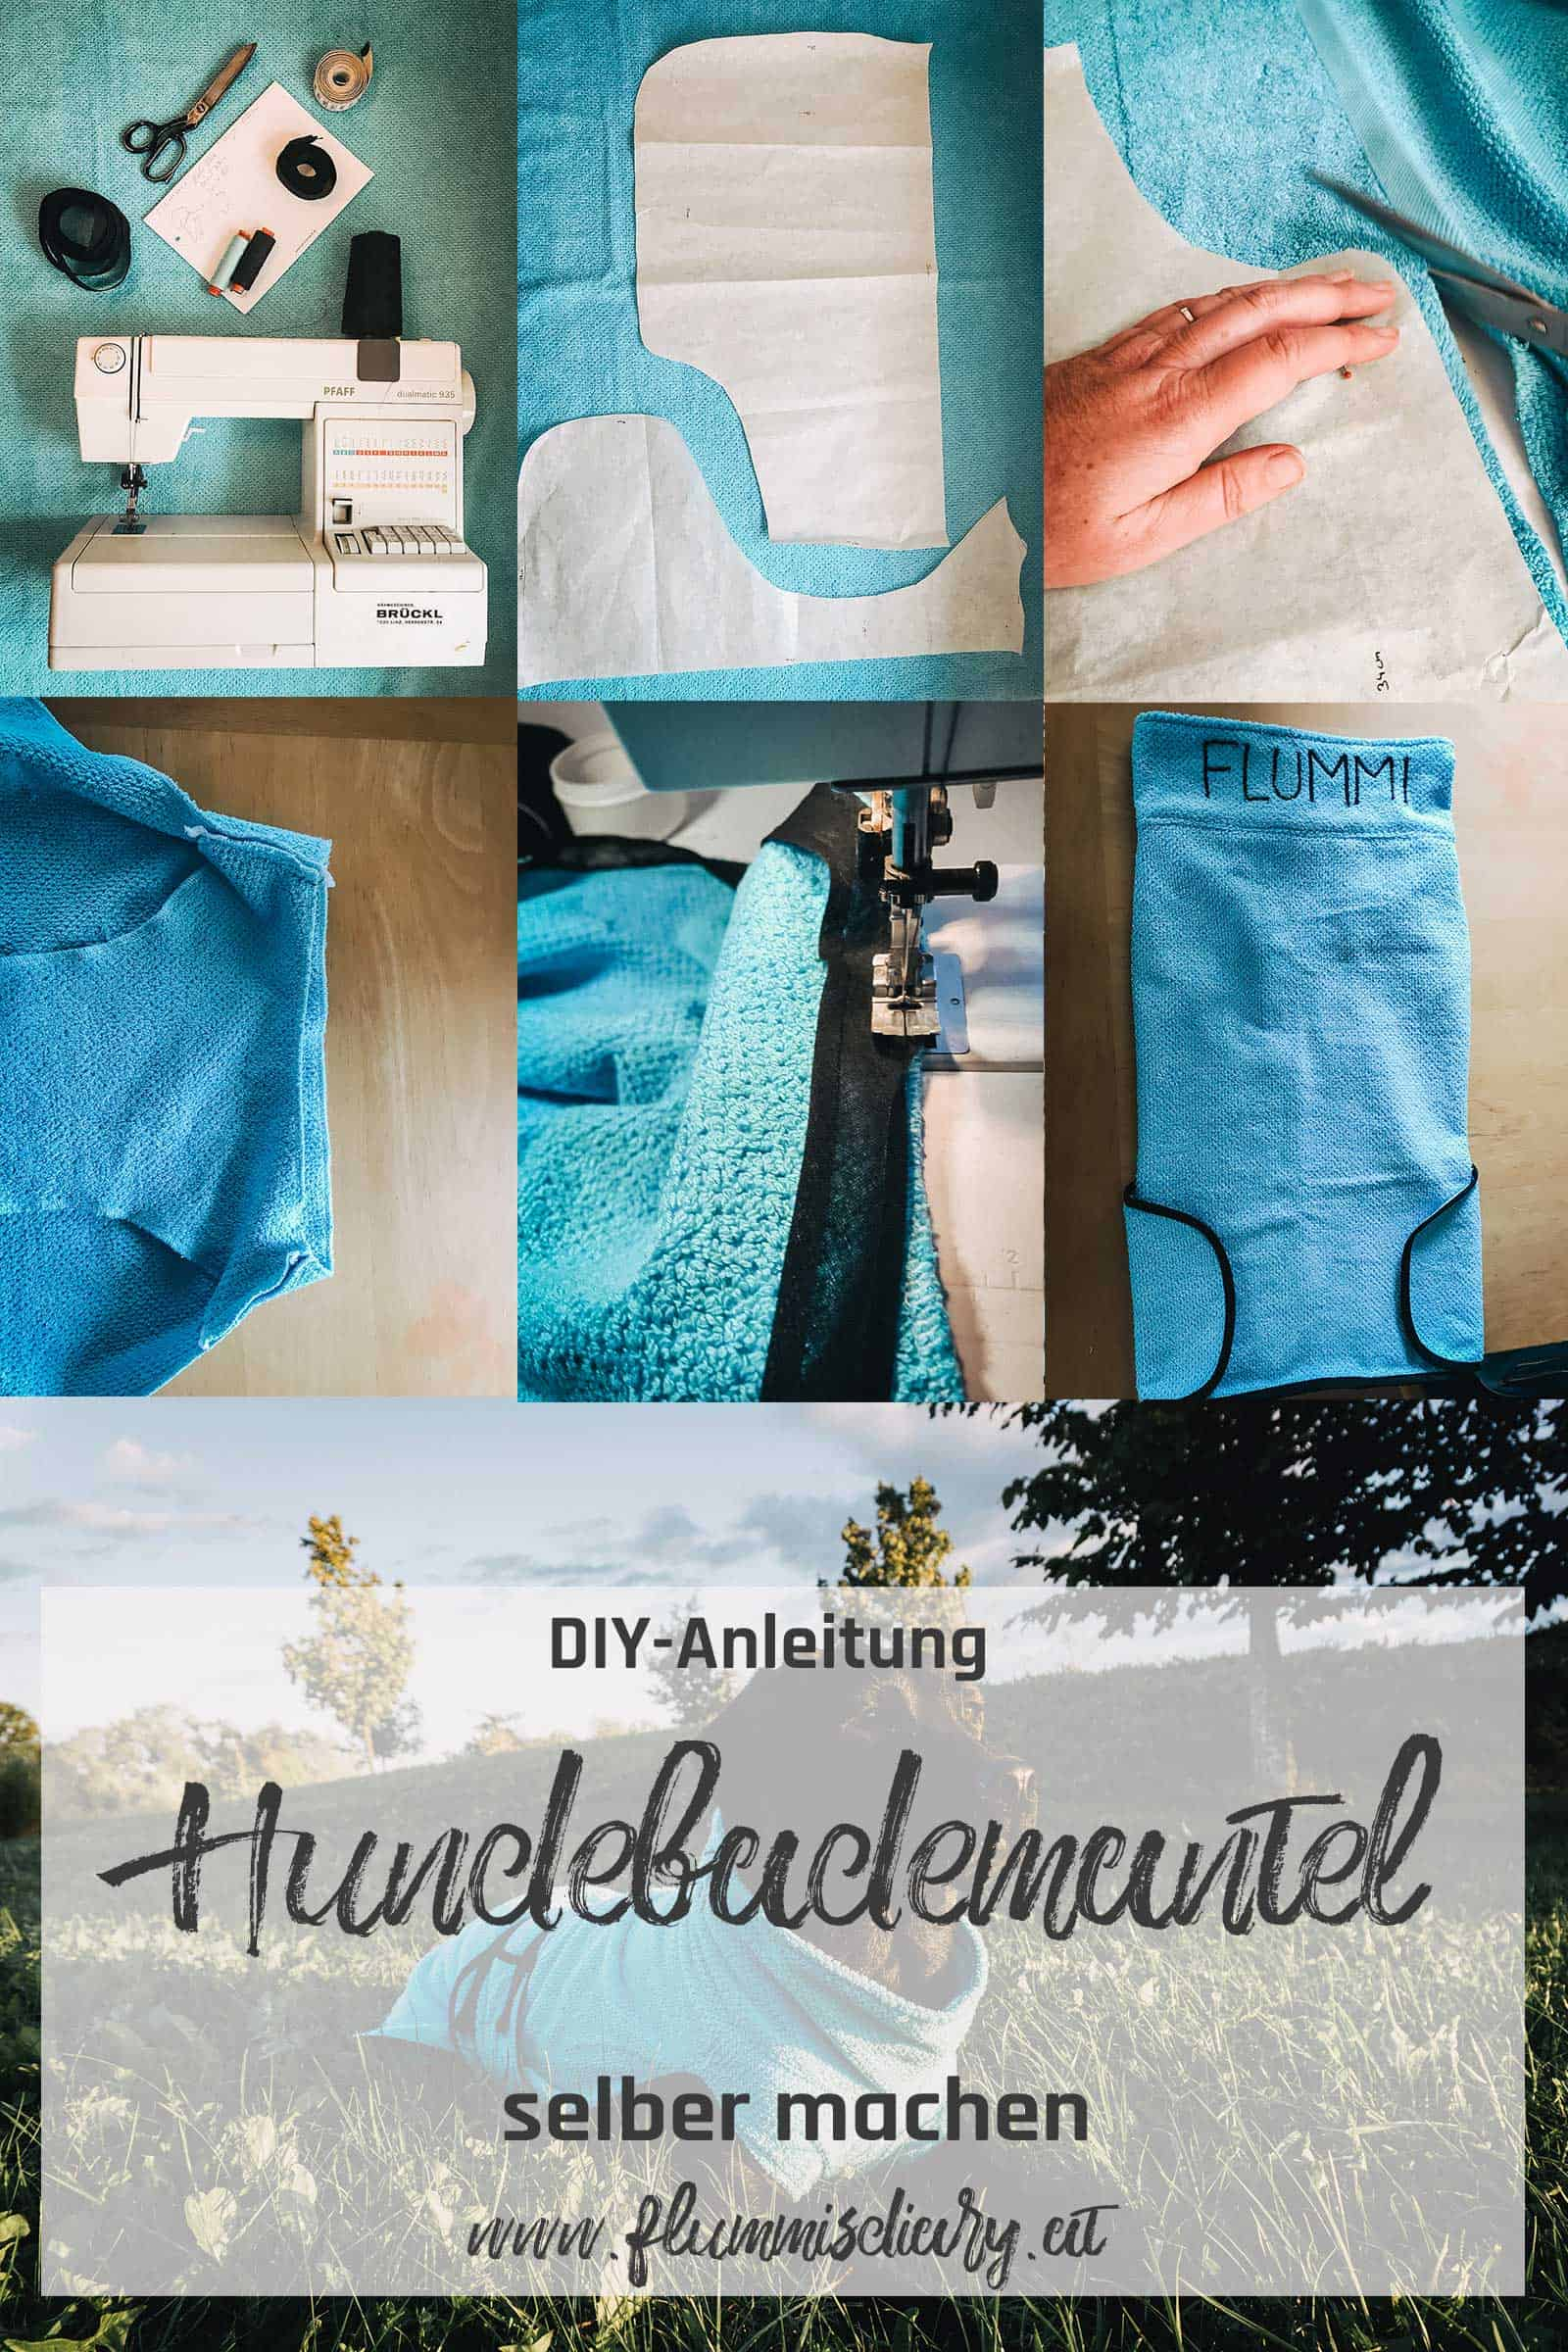 hundebademantel-diy